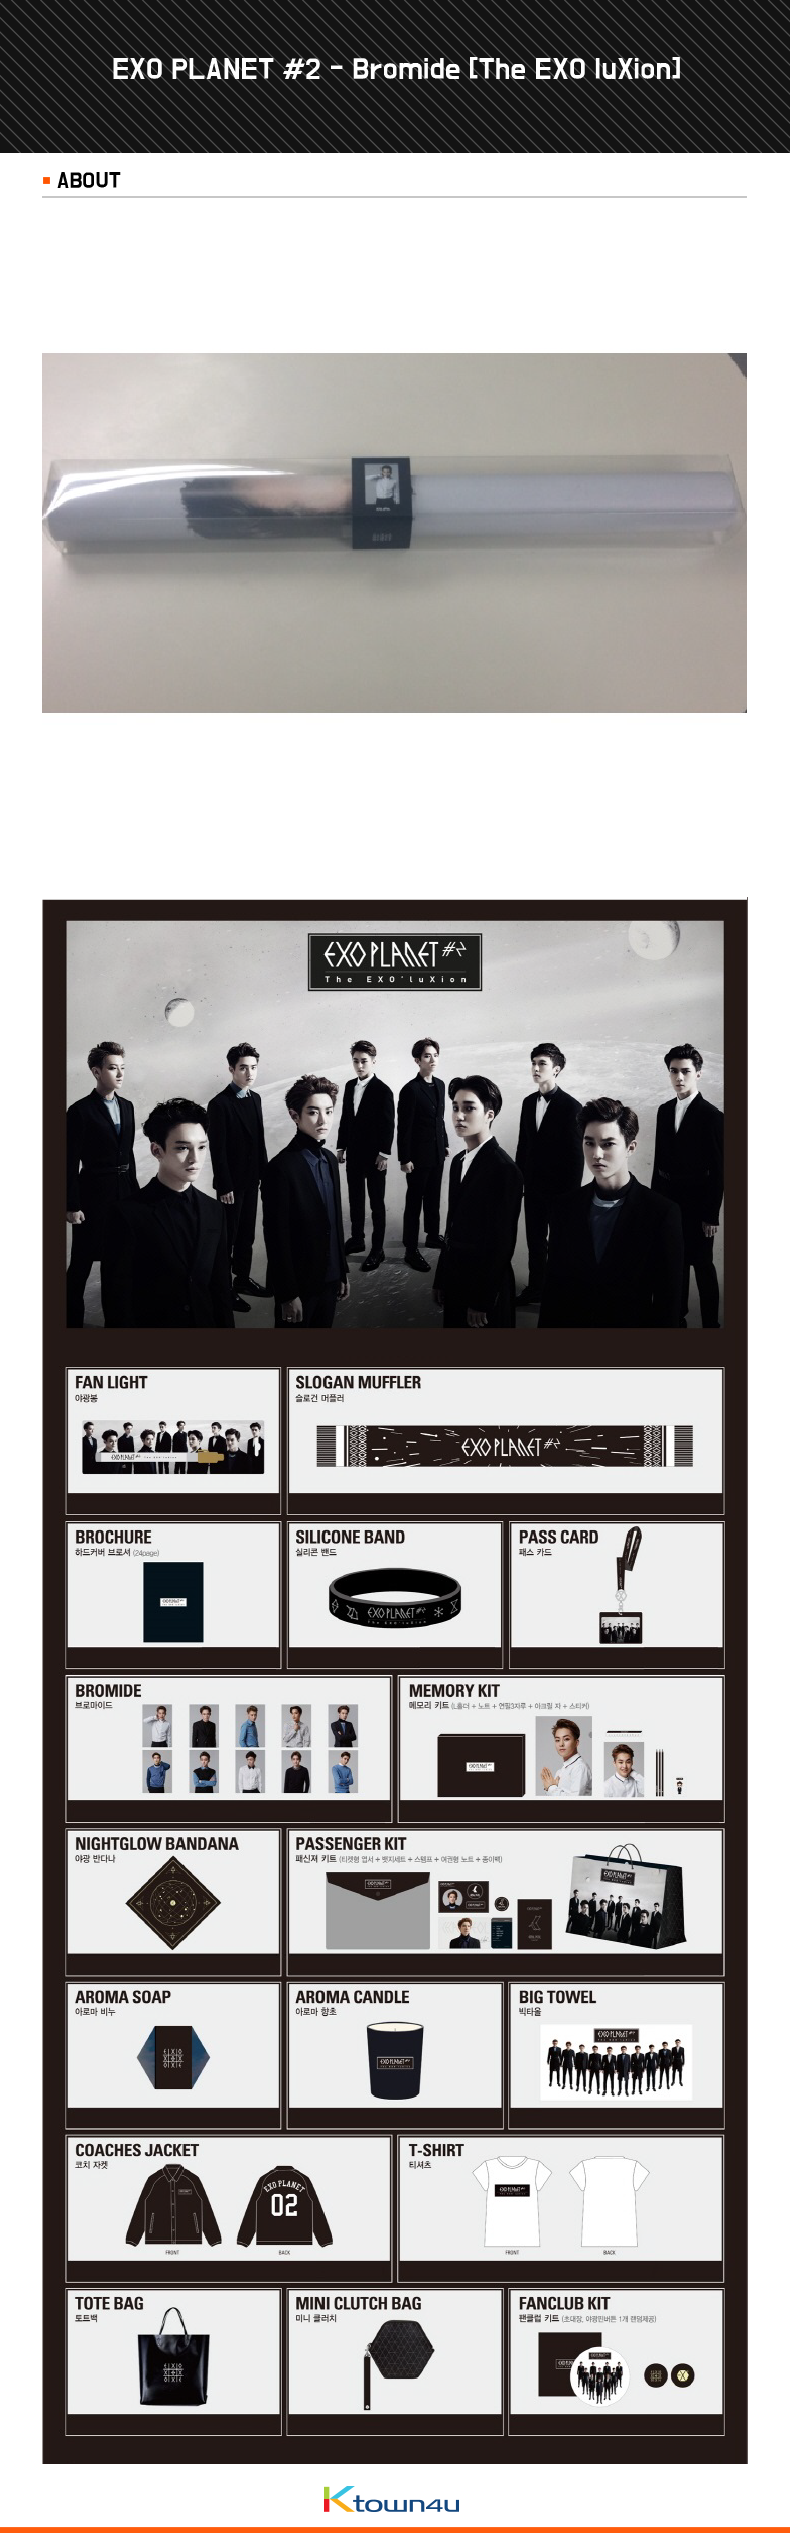 [エクソプラネット] EXO PLANET #2 - Bromide [The EXO luXion]